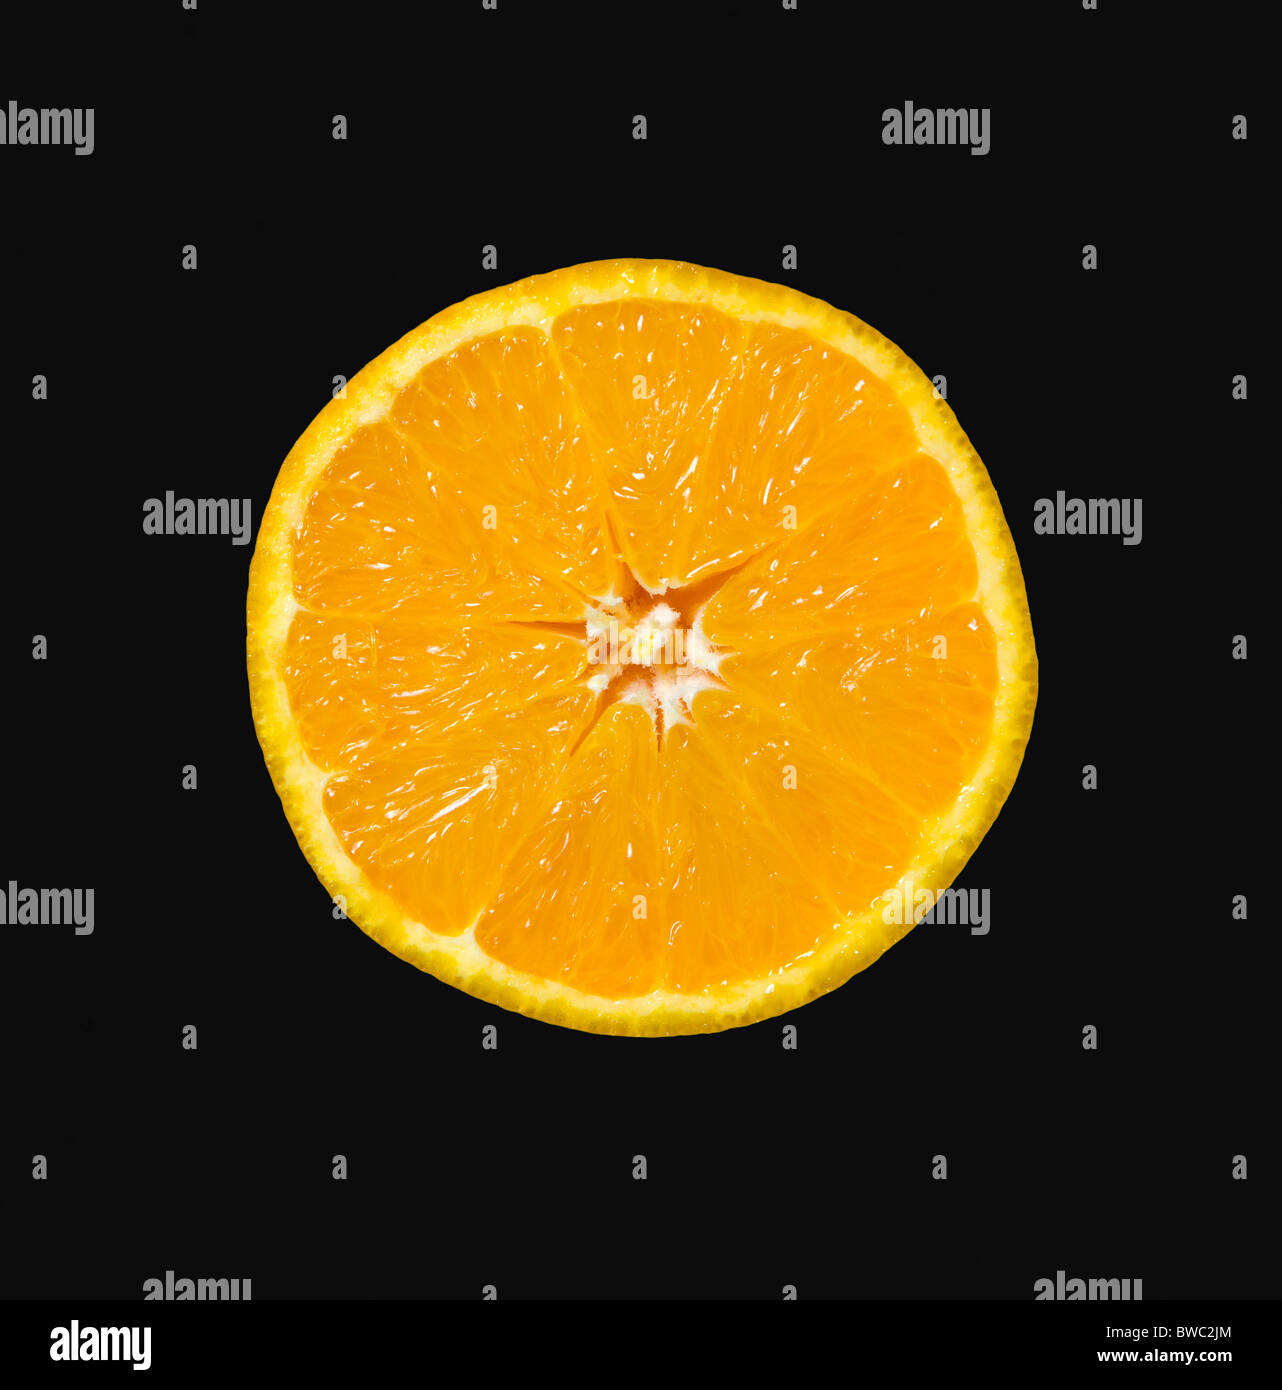 Food, Fruit, Oranges, One single ripe orange cut in half showing core and segments against a black background. - Stock Image